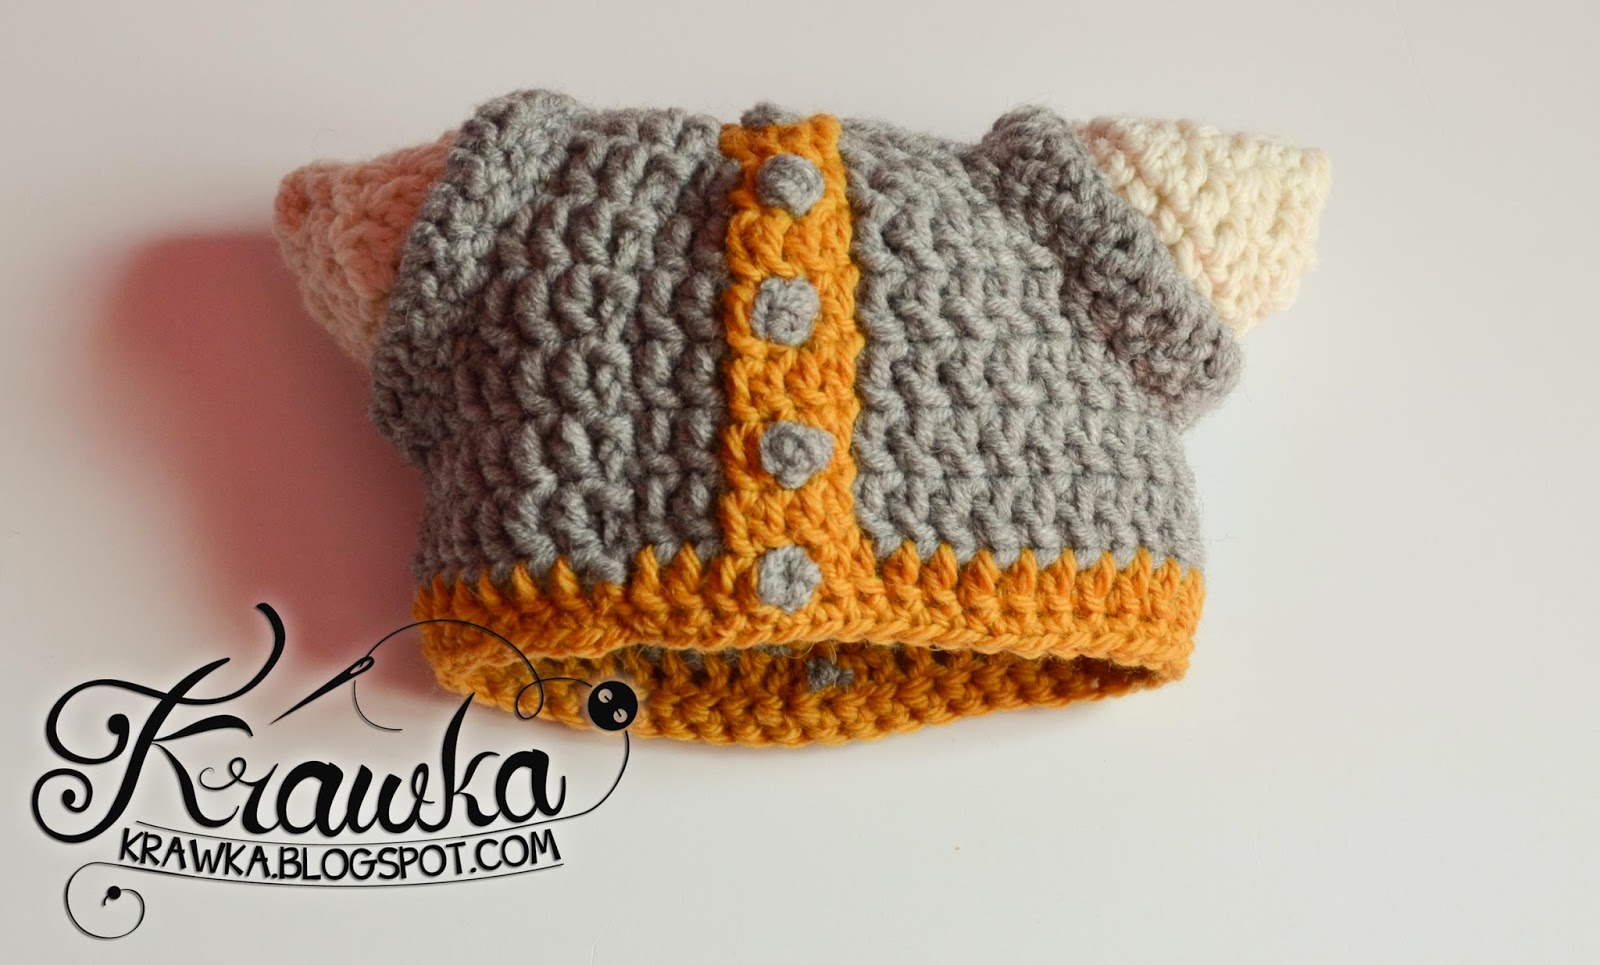 Krawka: Crochet viking newborn hat. Props for a photo session of a newborn baby.